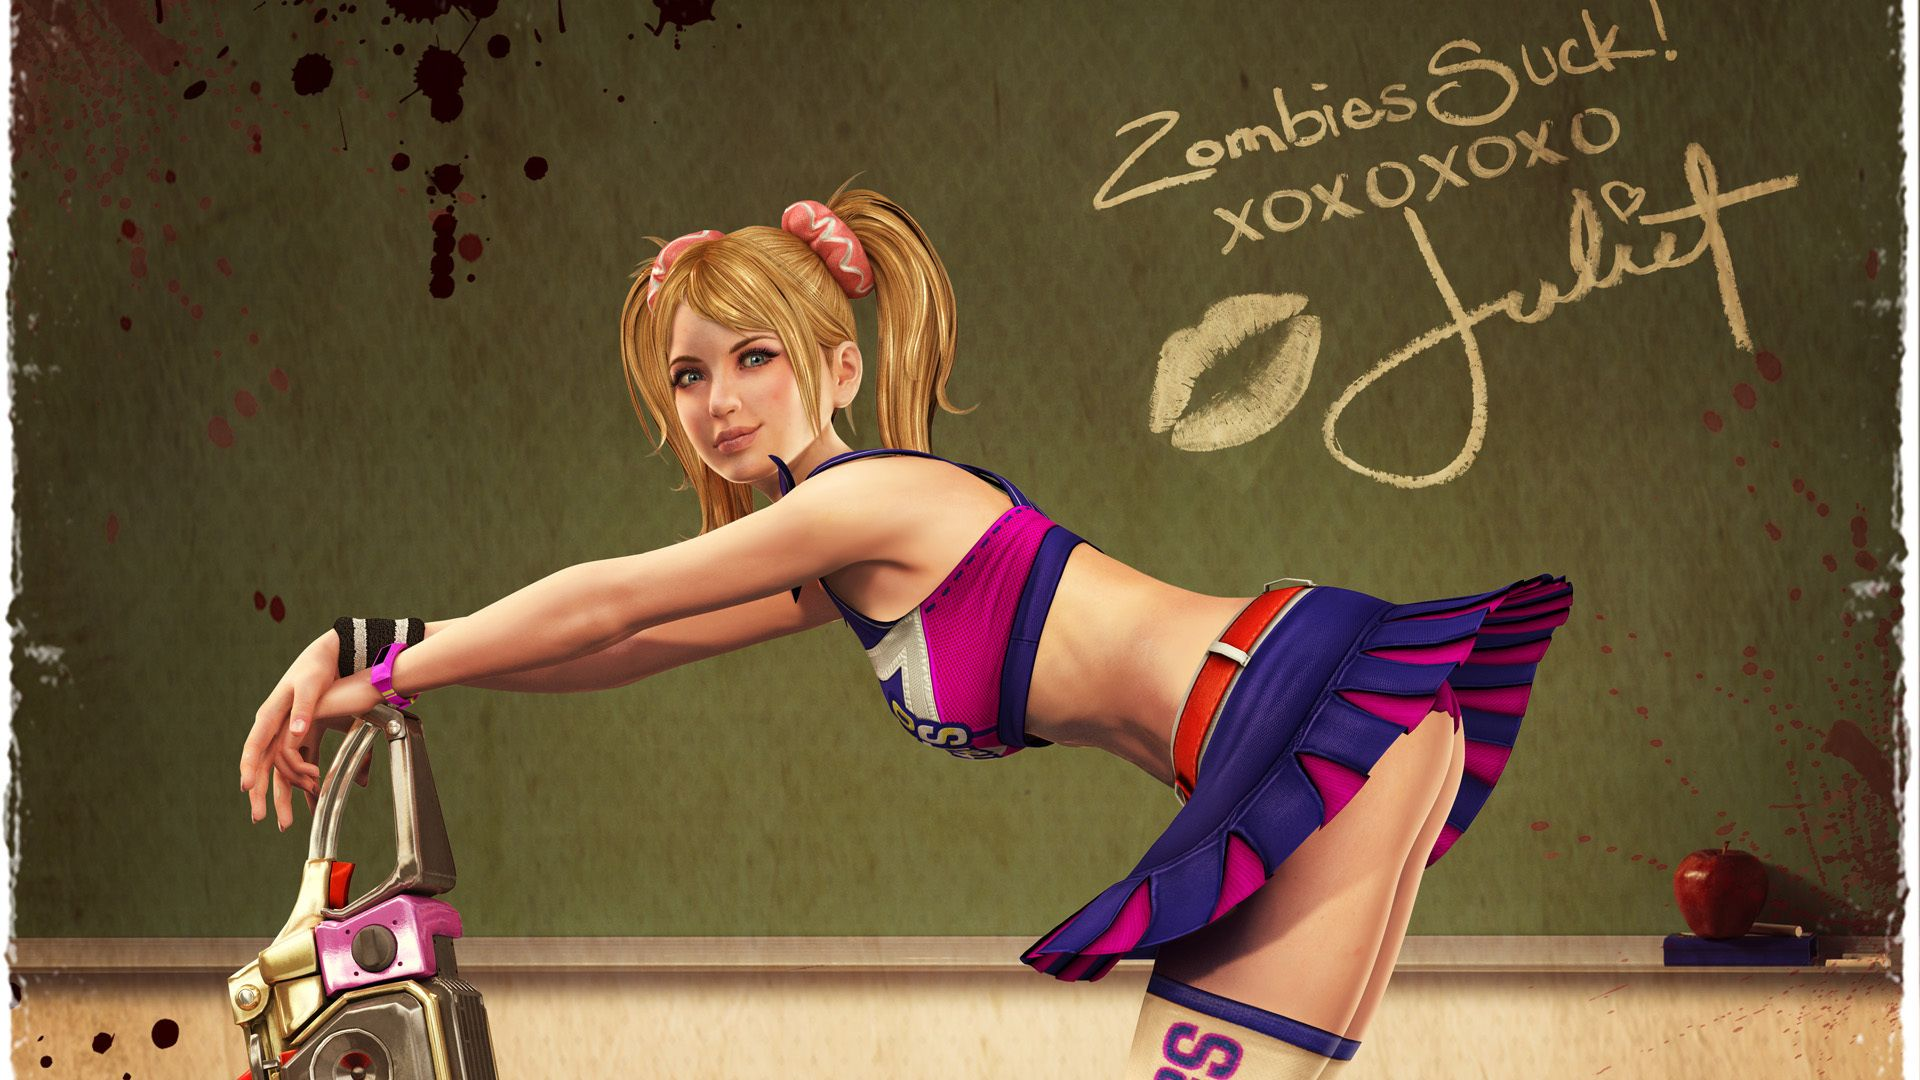 awesome games for girls girl games - HD1440×900